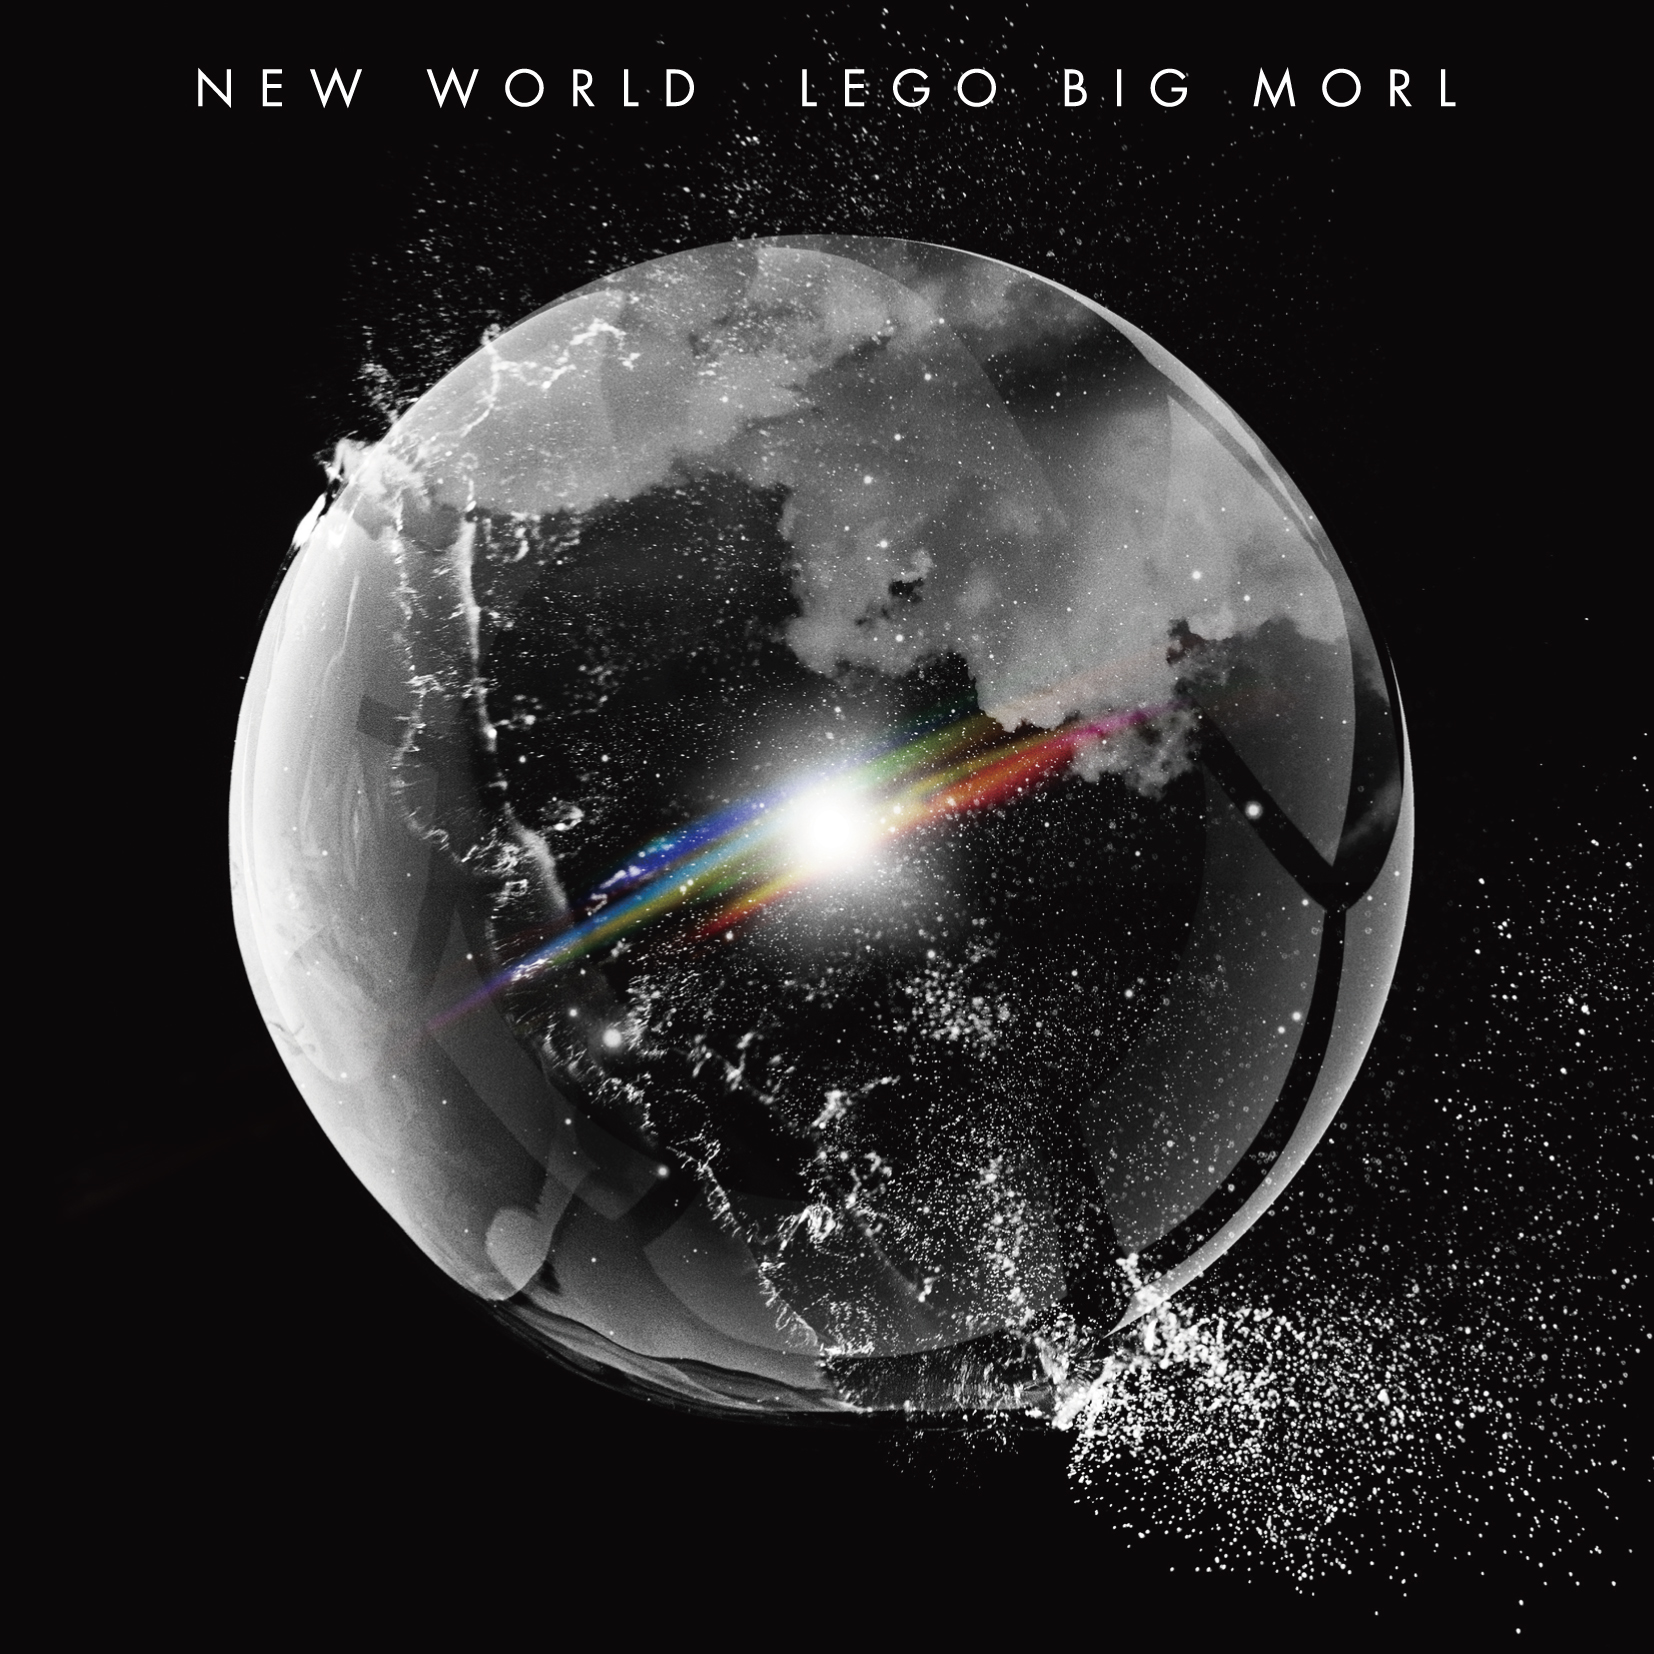 LEGO BIG MORL 「NEW WORLD」